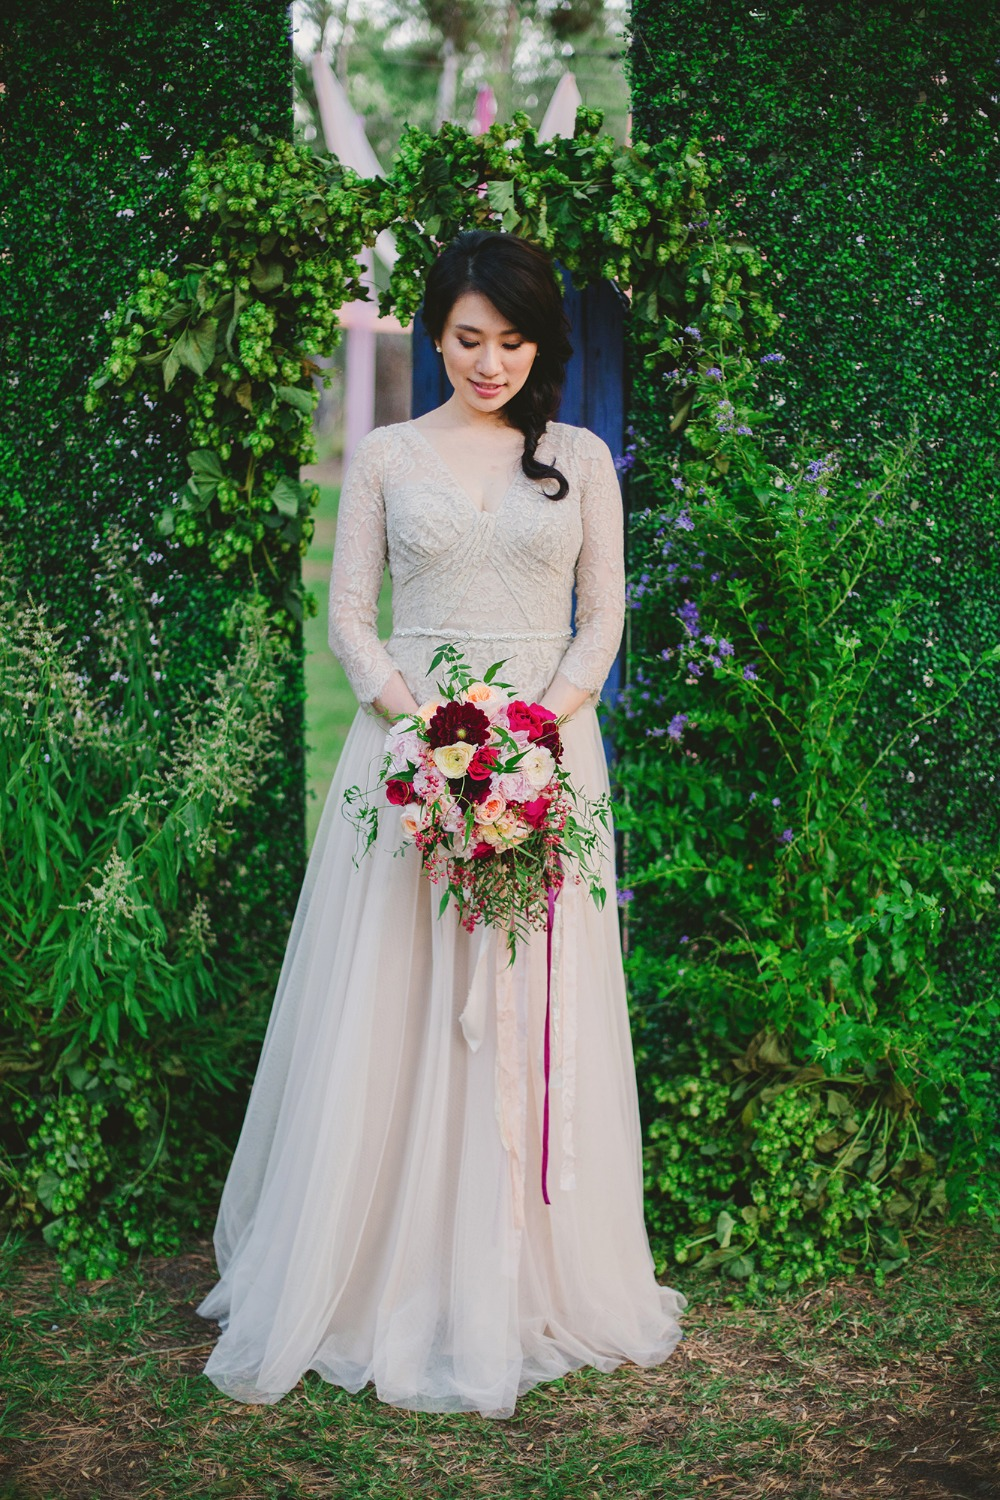 Gorgeous gown and bouquet